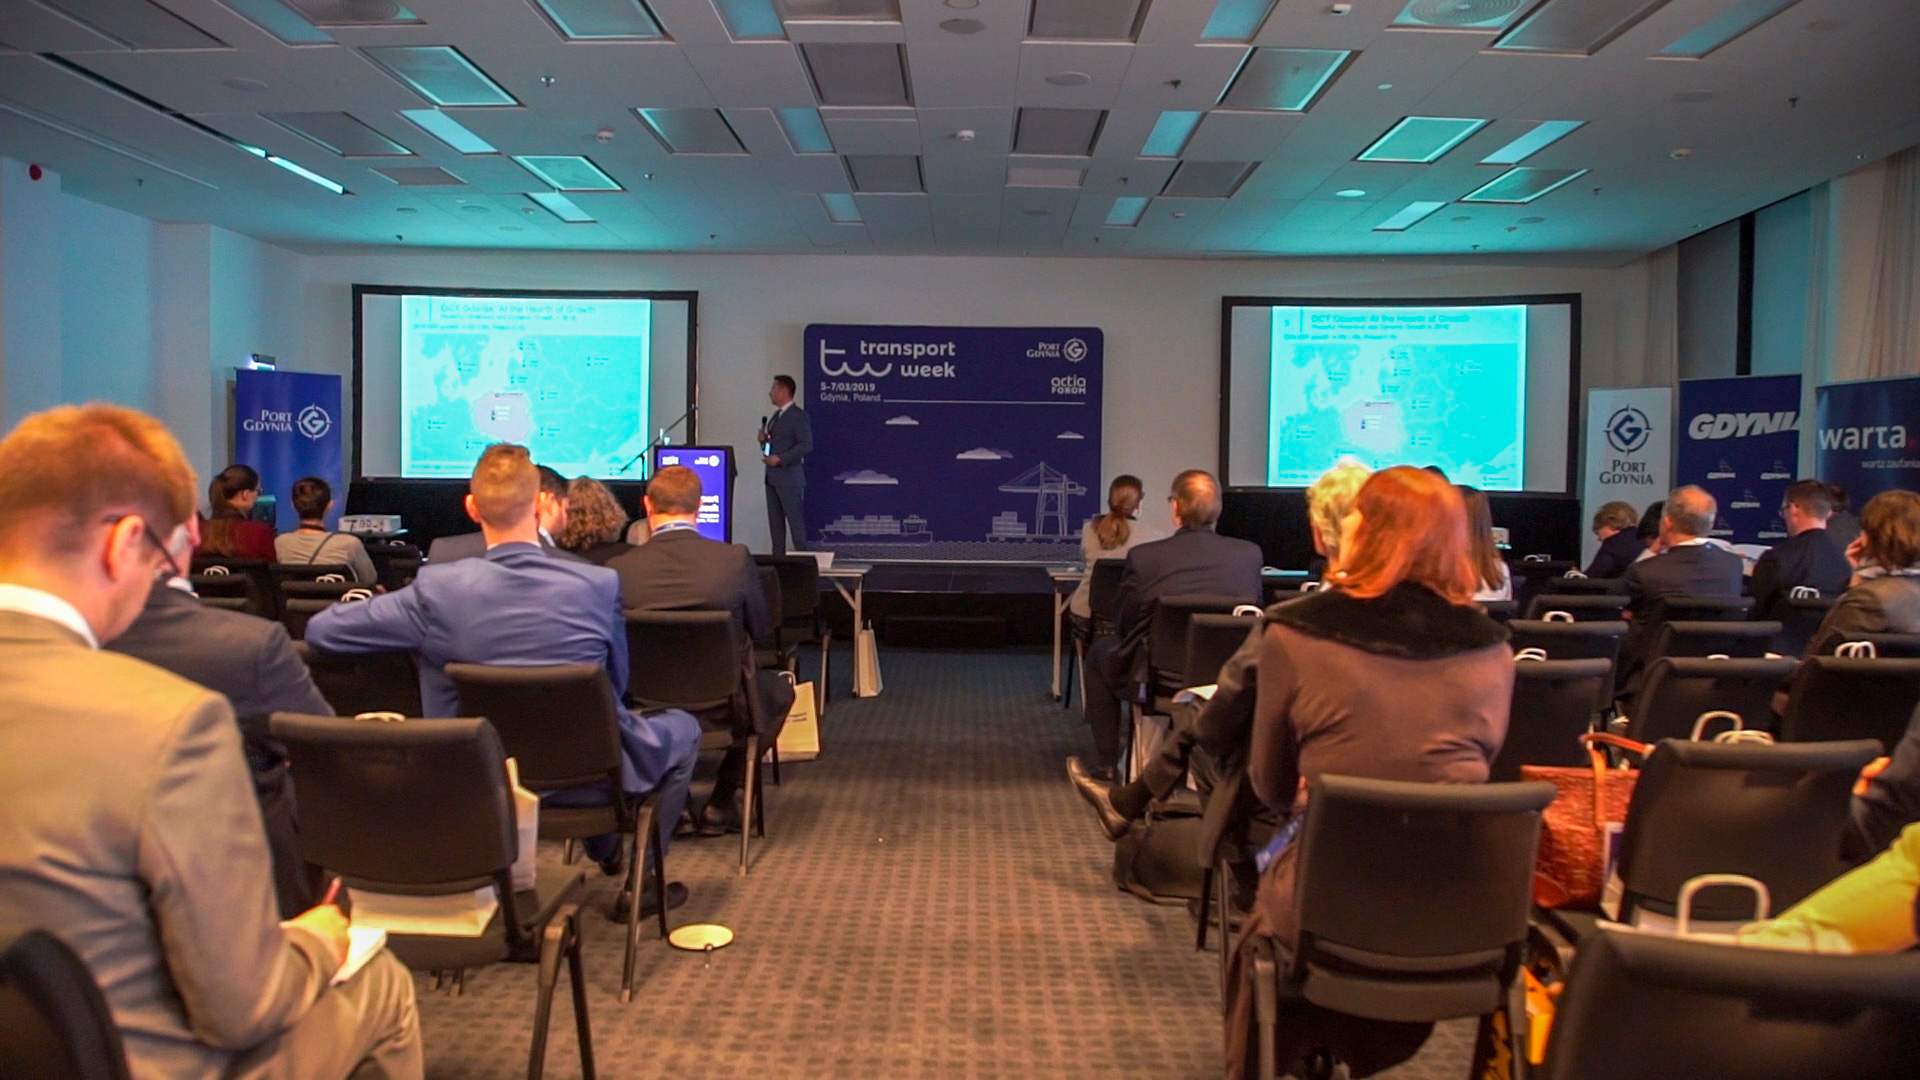 Divining the future of the port market – Transport Week 2019 kicks off in Gdynia